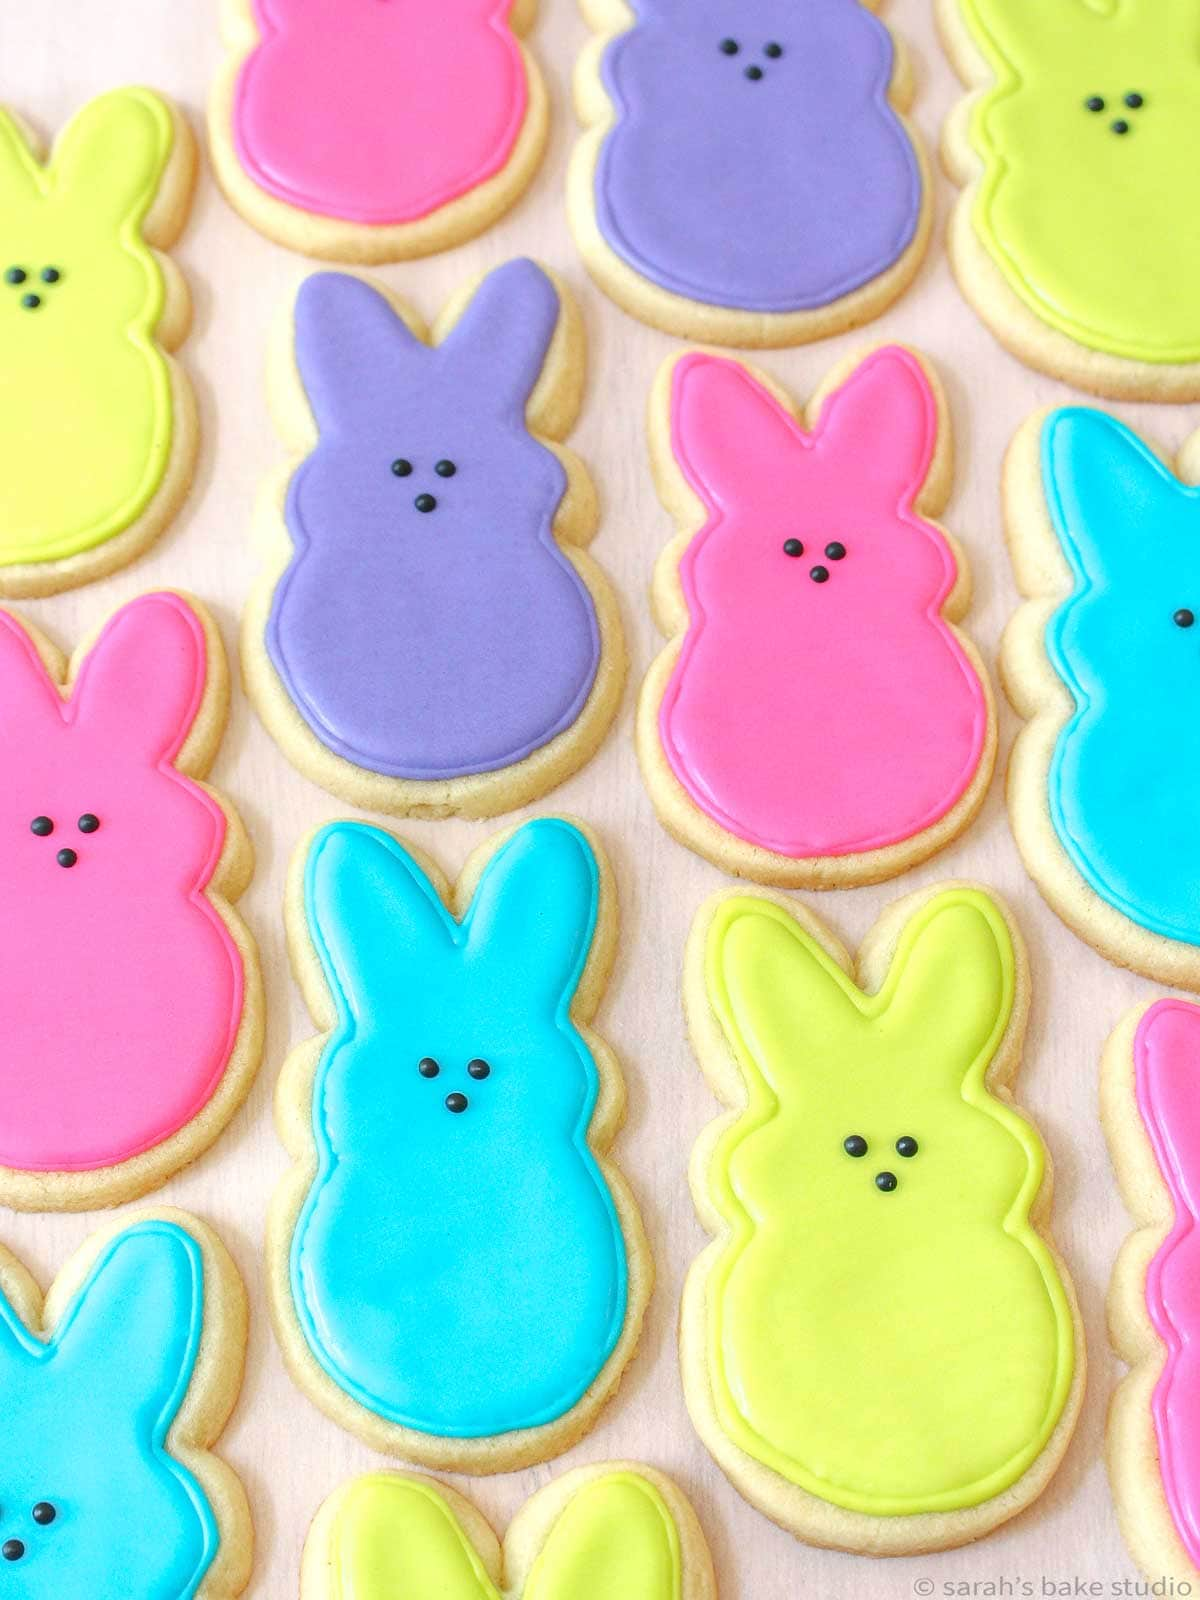 My first attempt at PEEPS Easter Bunny Sugar Cookies back in 2014 without the sanding sugar.